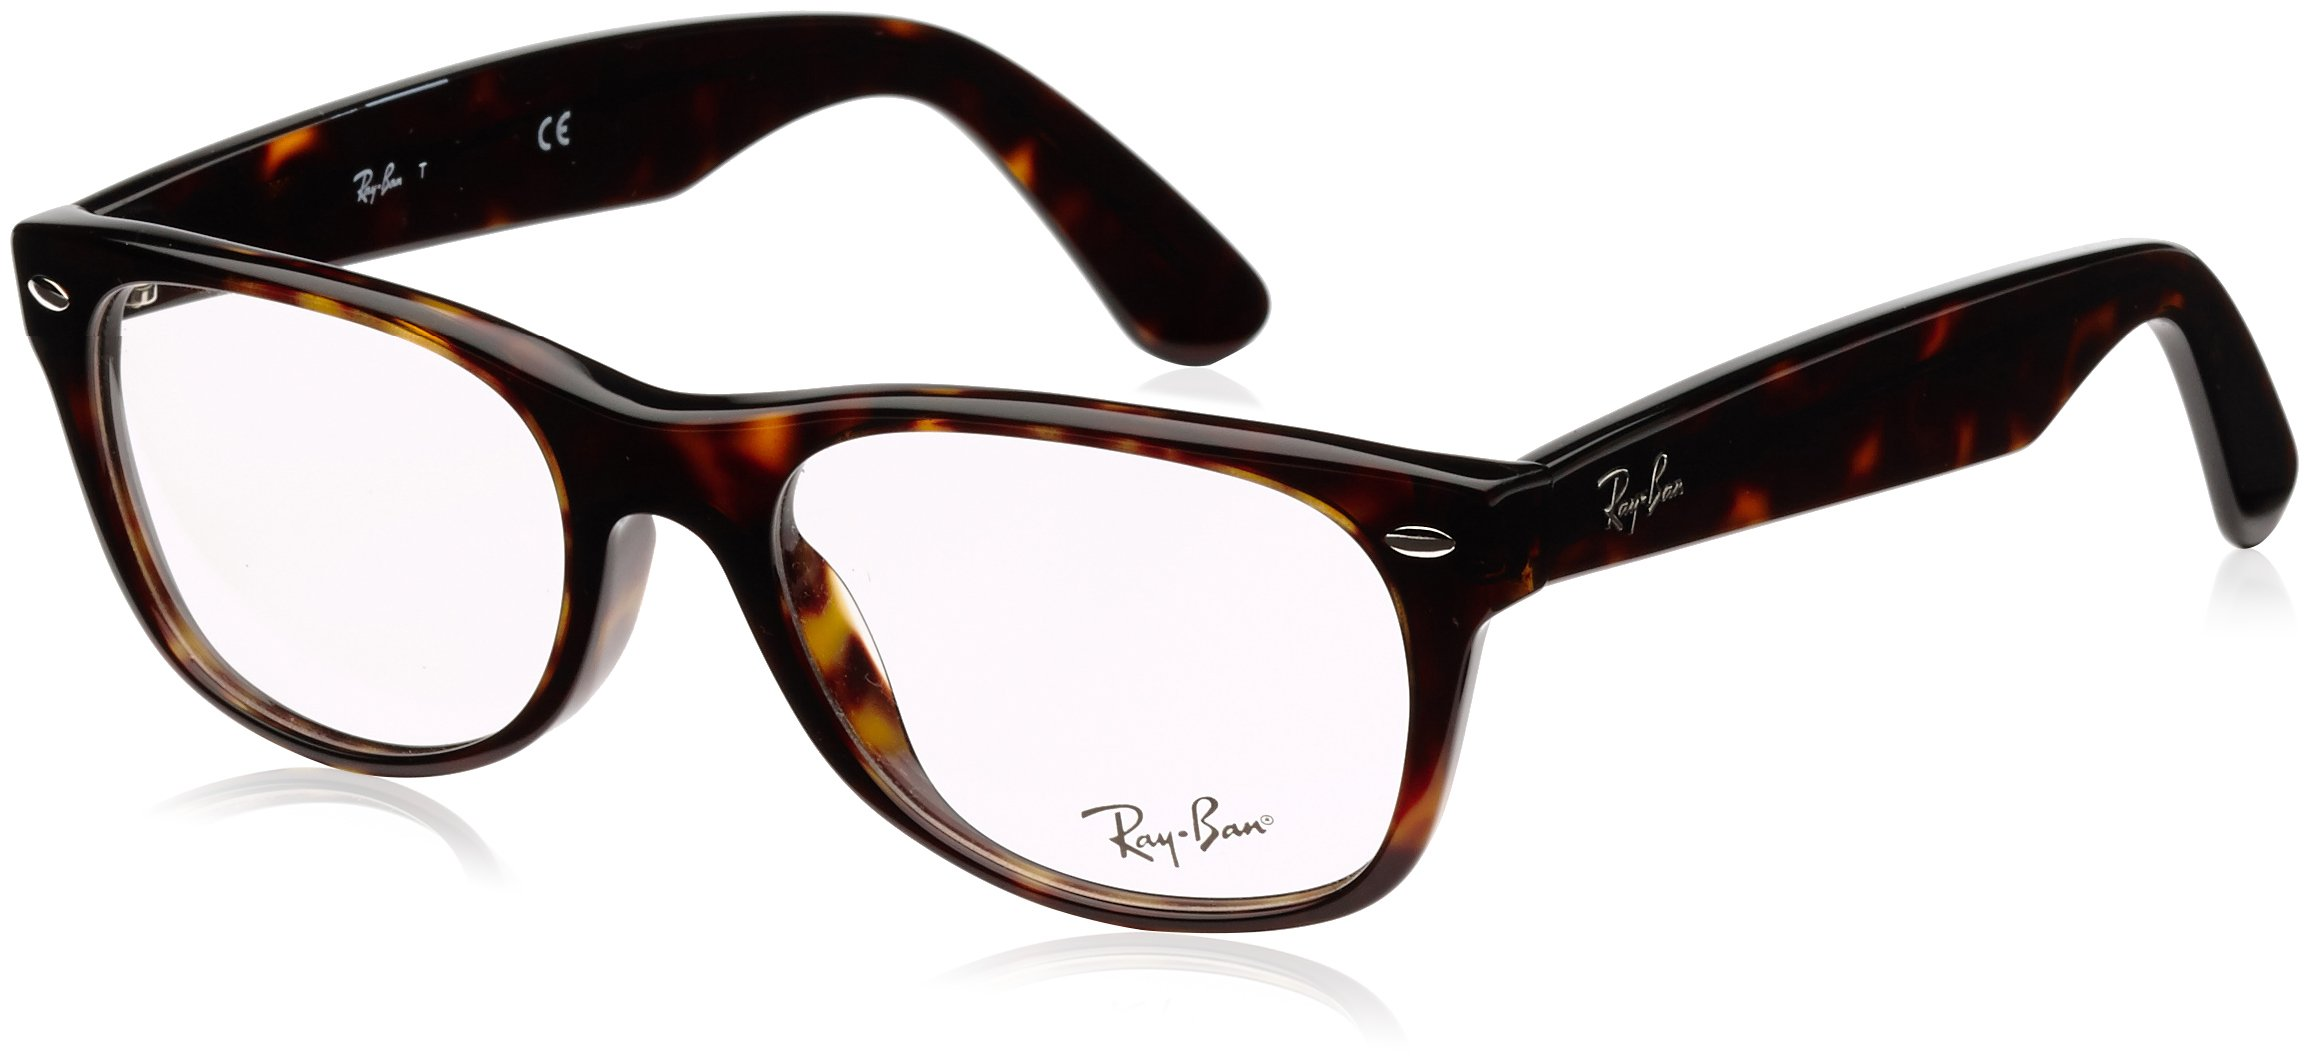 Ray-Ban RX5184 New Wayferer Eyeglasses Tortoise 52mm [Apparel] by Ray-Ban